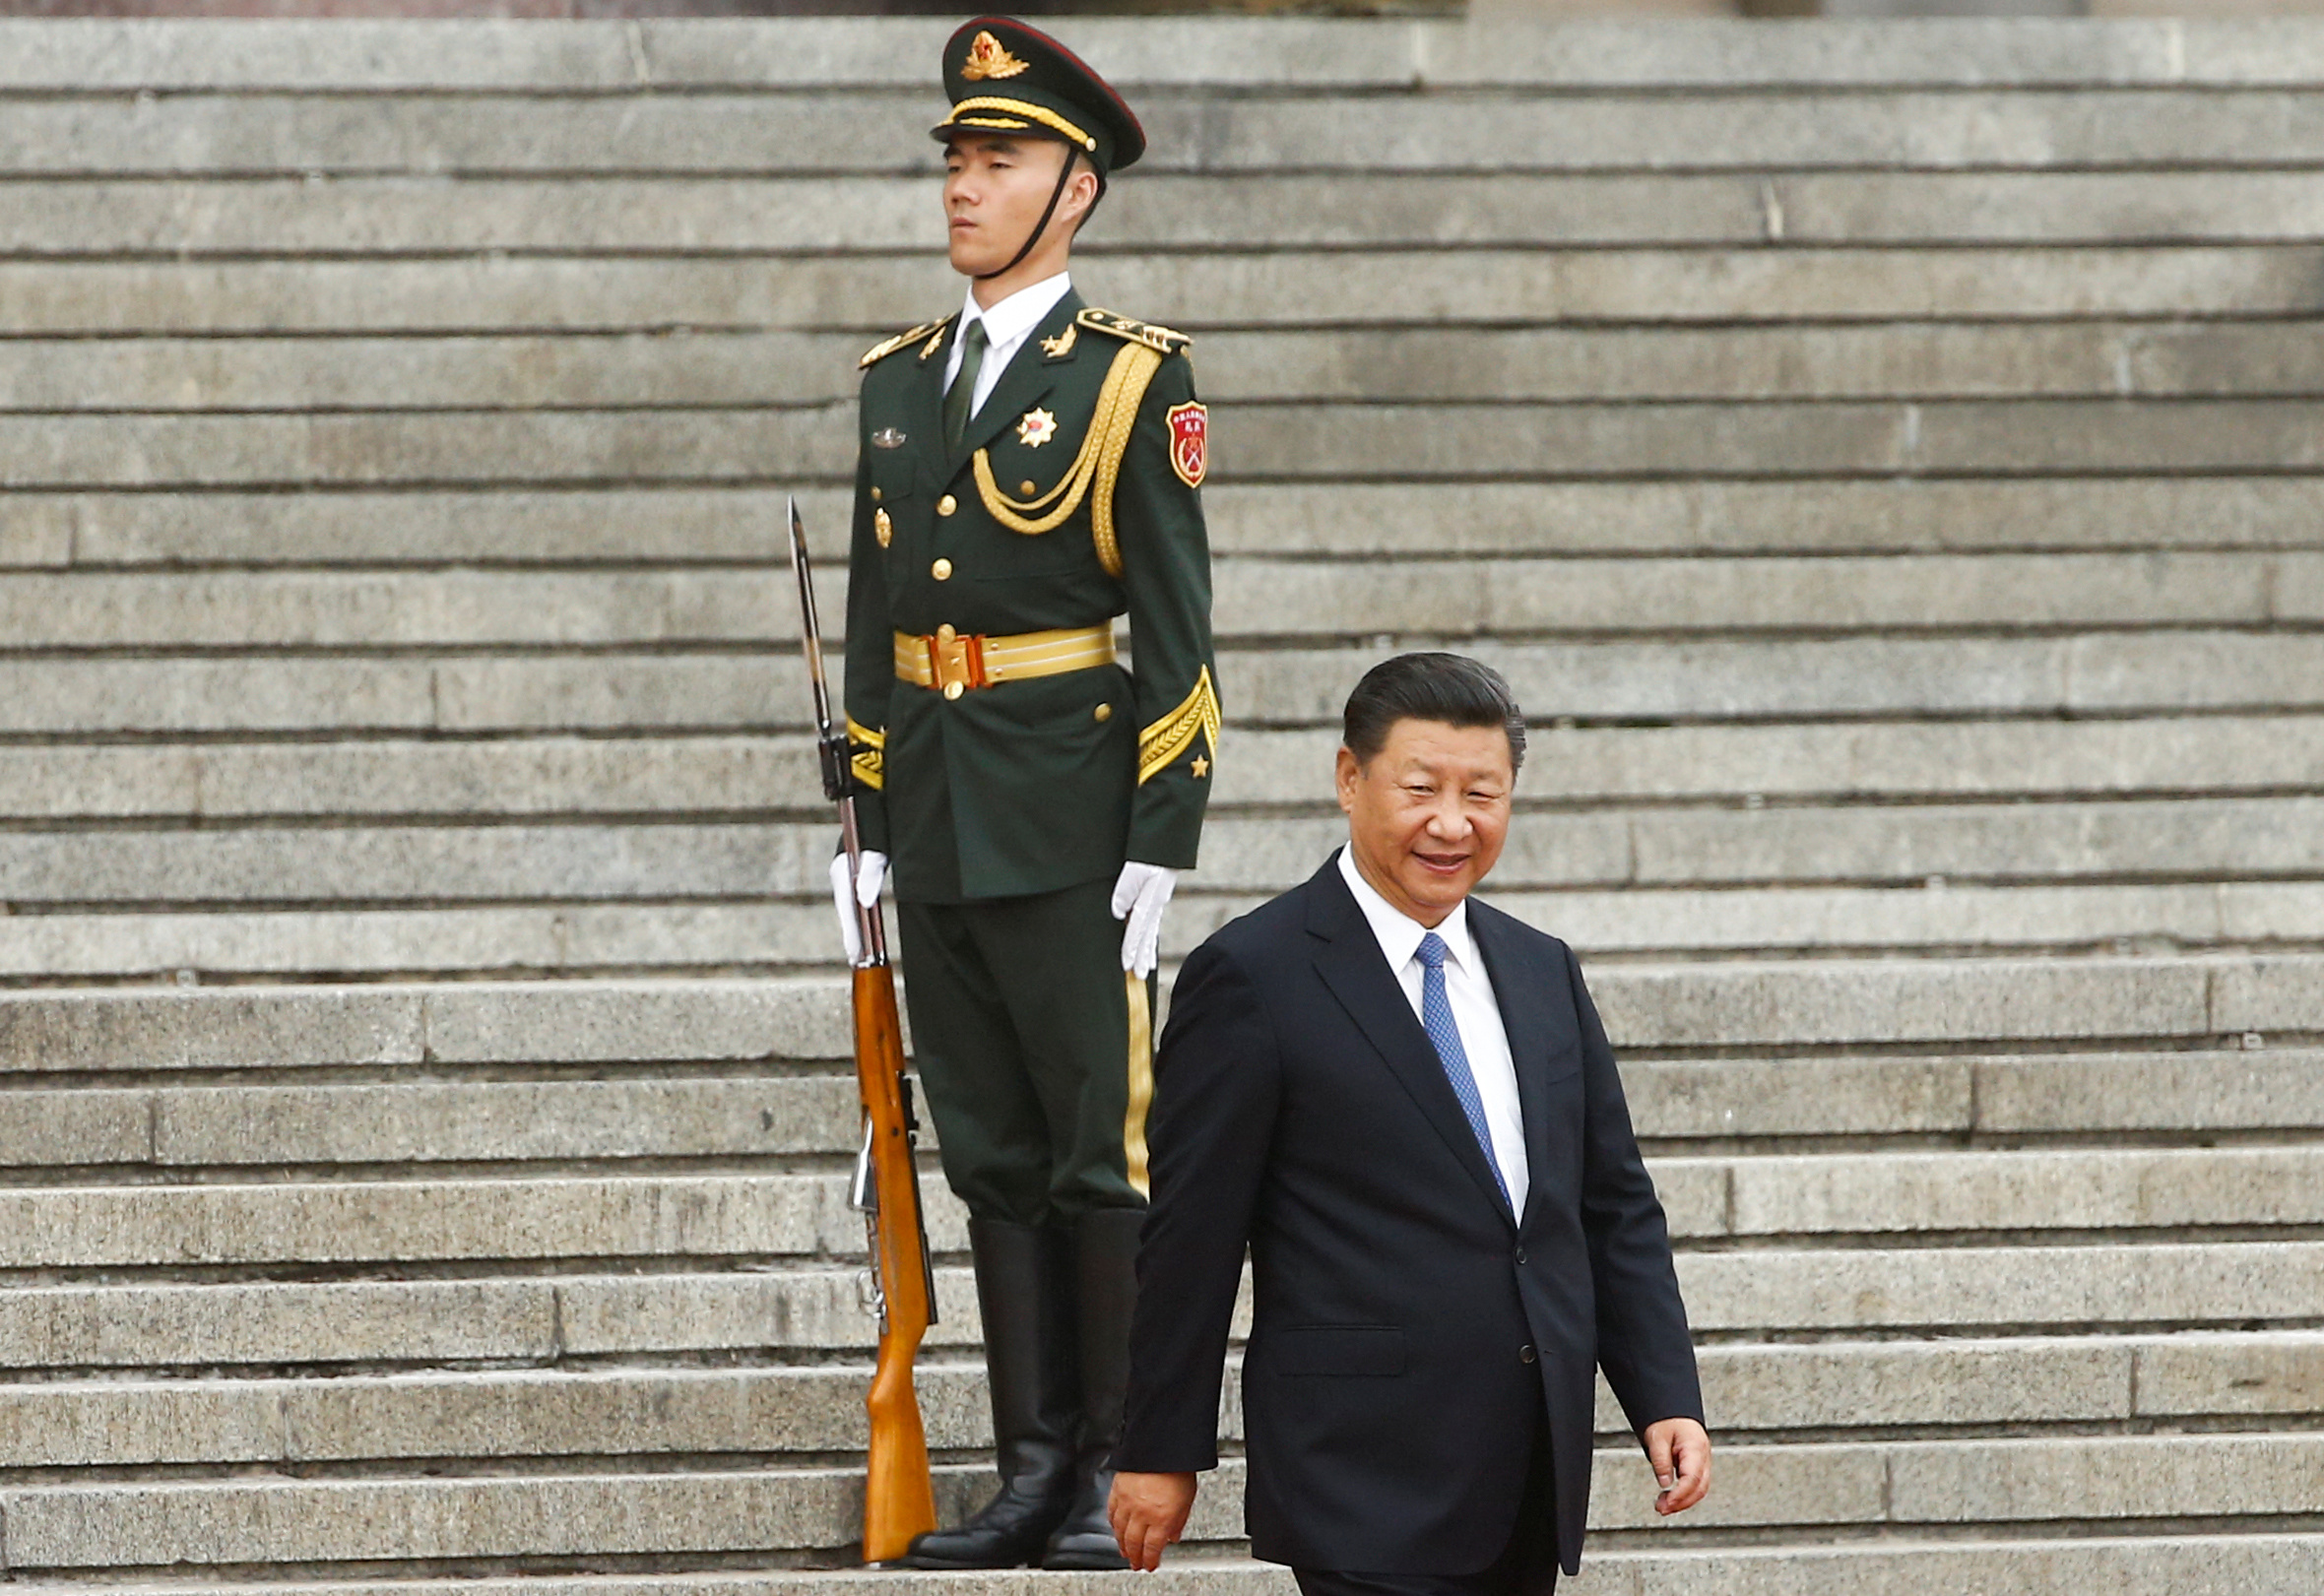 China's President Xi Jinping arrives at a welcoming ceremony for Brazil's President Michel Temer (not pictured) at the Great Hall of the People in Beijing, China September 1, 2017.